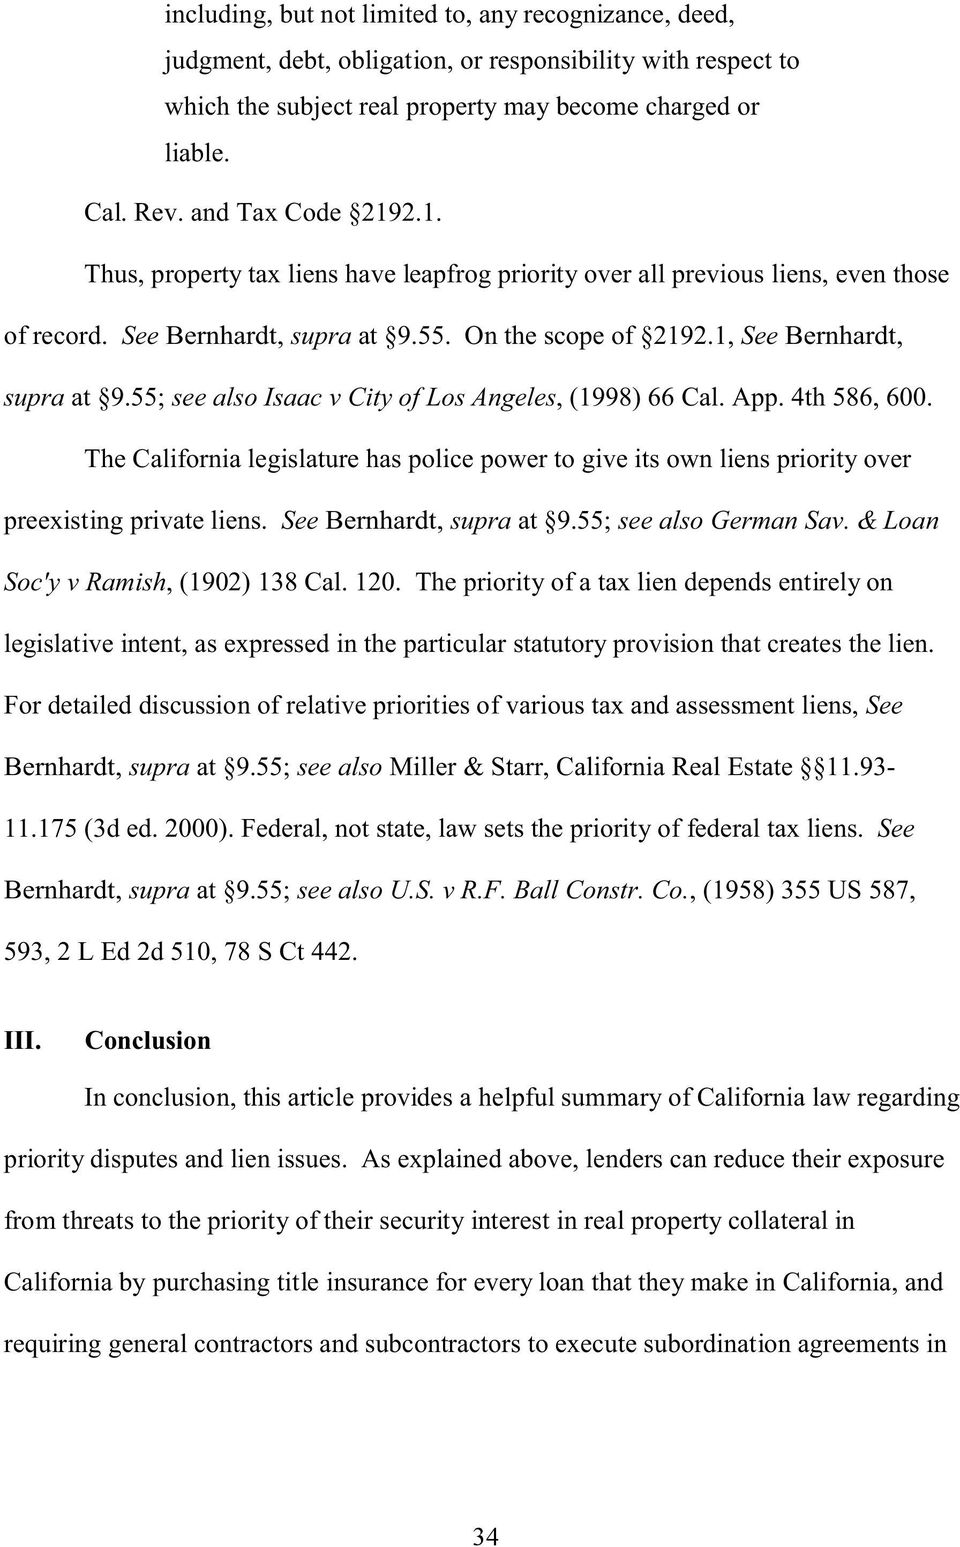 55; see also Isaac v City of Los Angeles, (1998) 66 Cal. App. 4th 586, 600. The California legislature has police power to give its own liens priority over preexisting private liens.